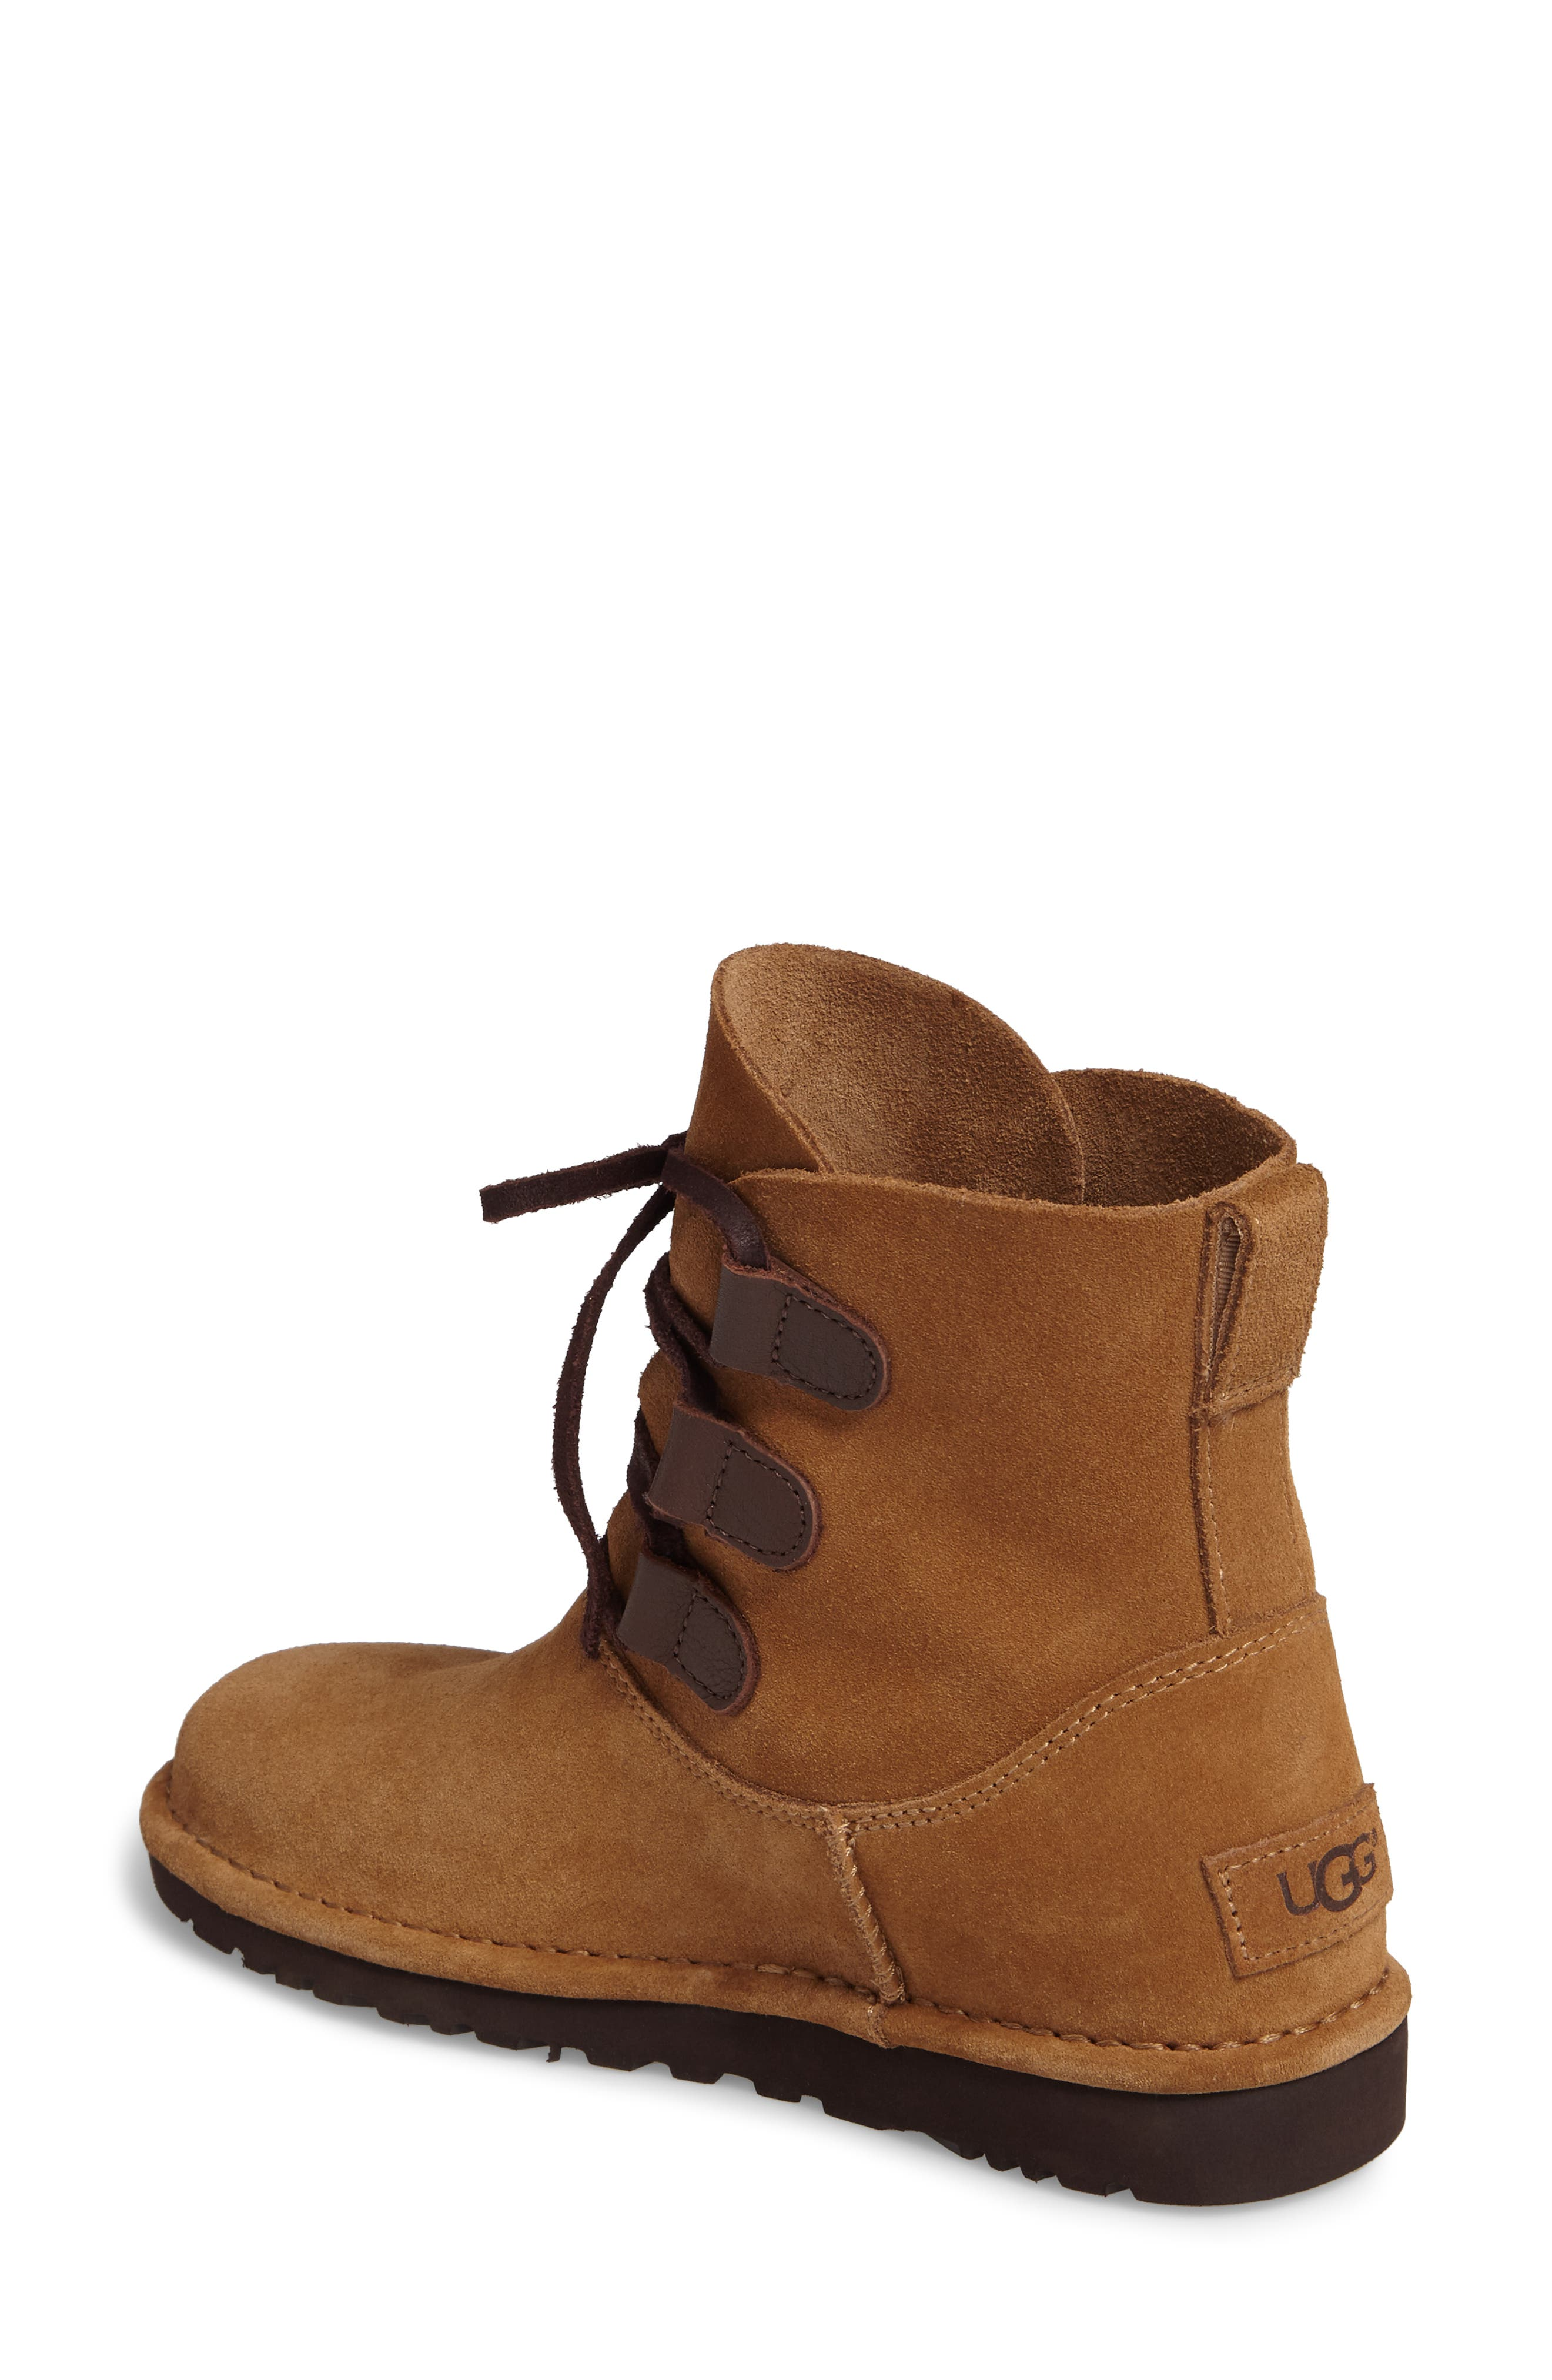 Elvi Short Boot,                             Alternate thumbnail 5, color,